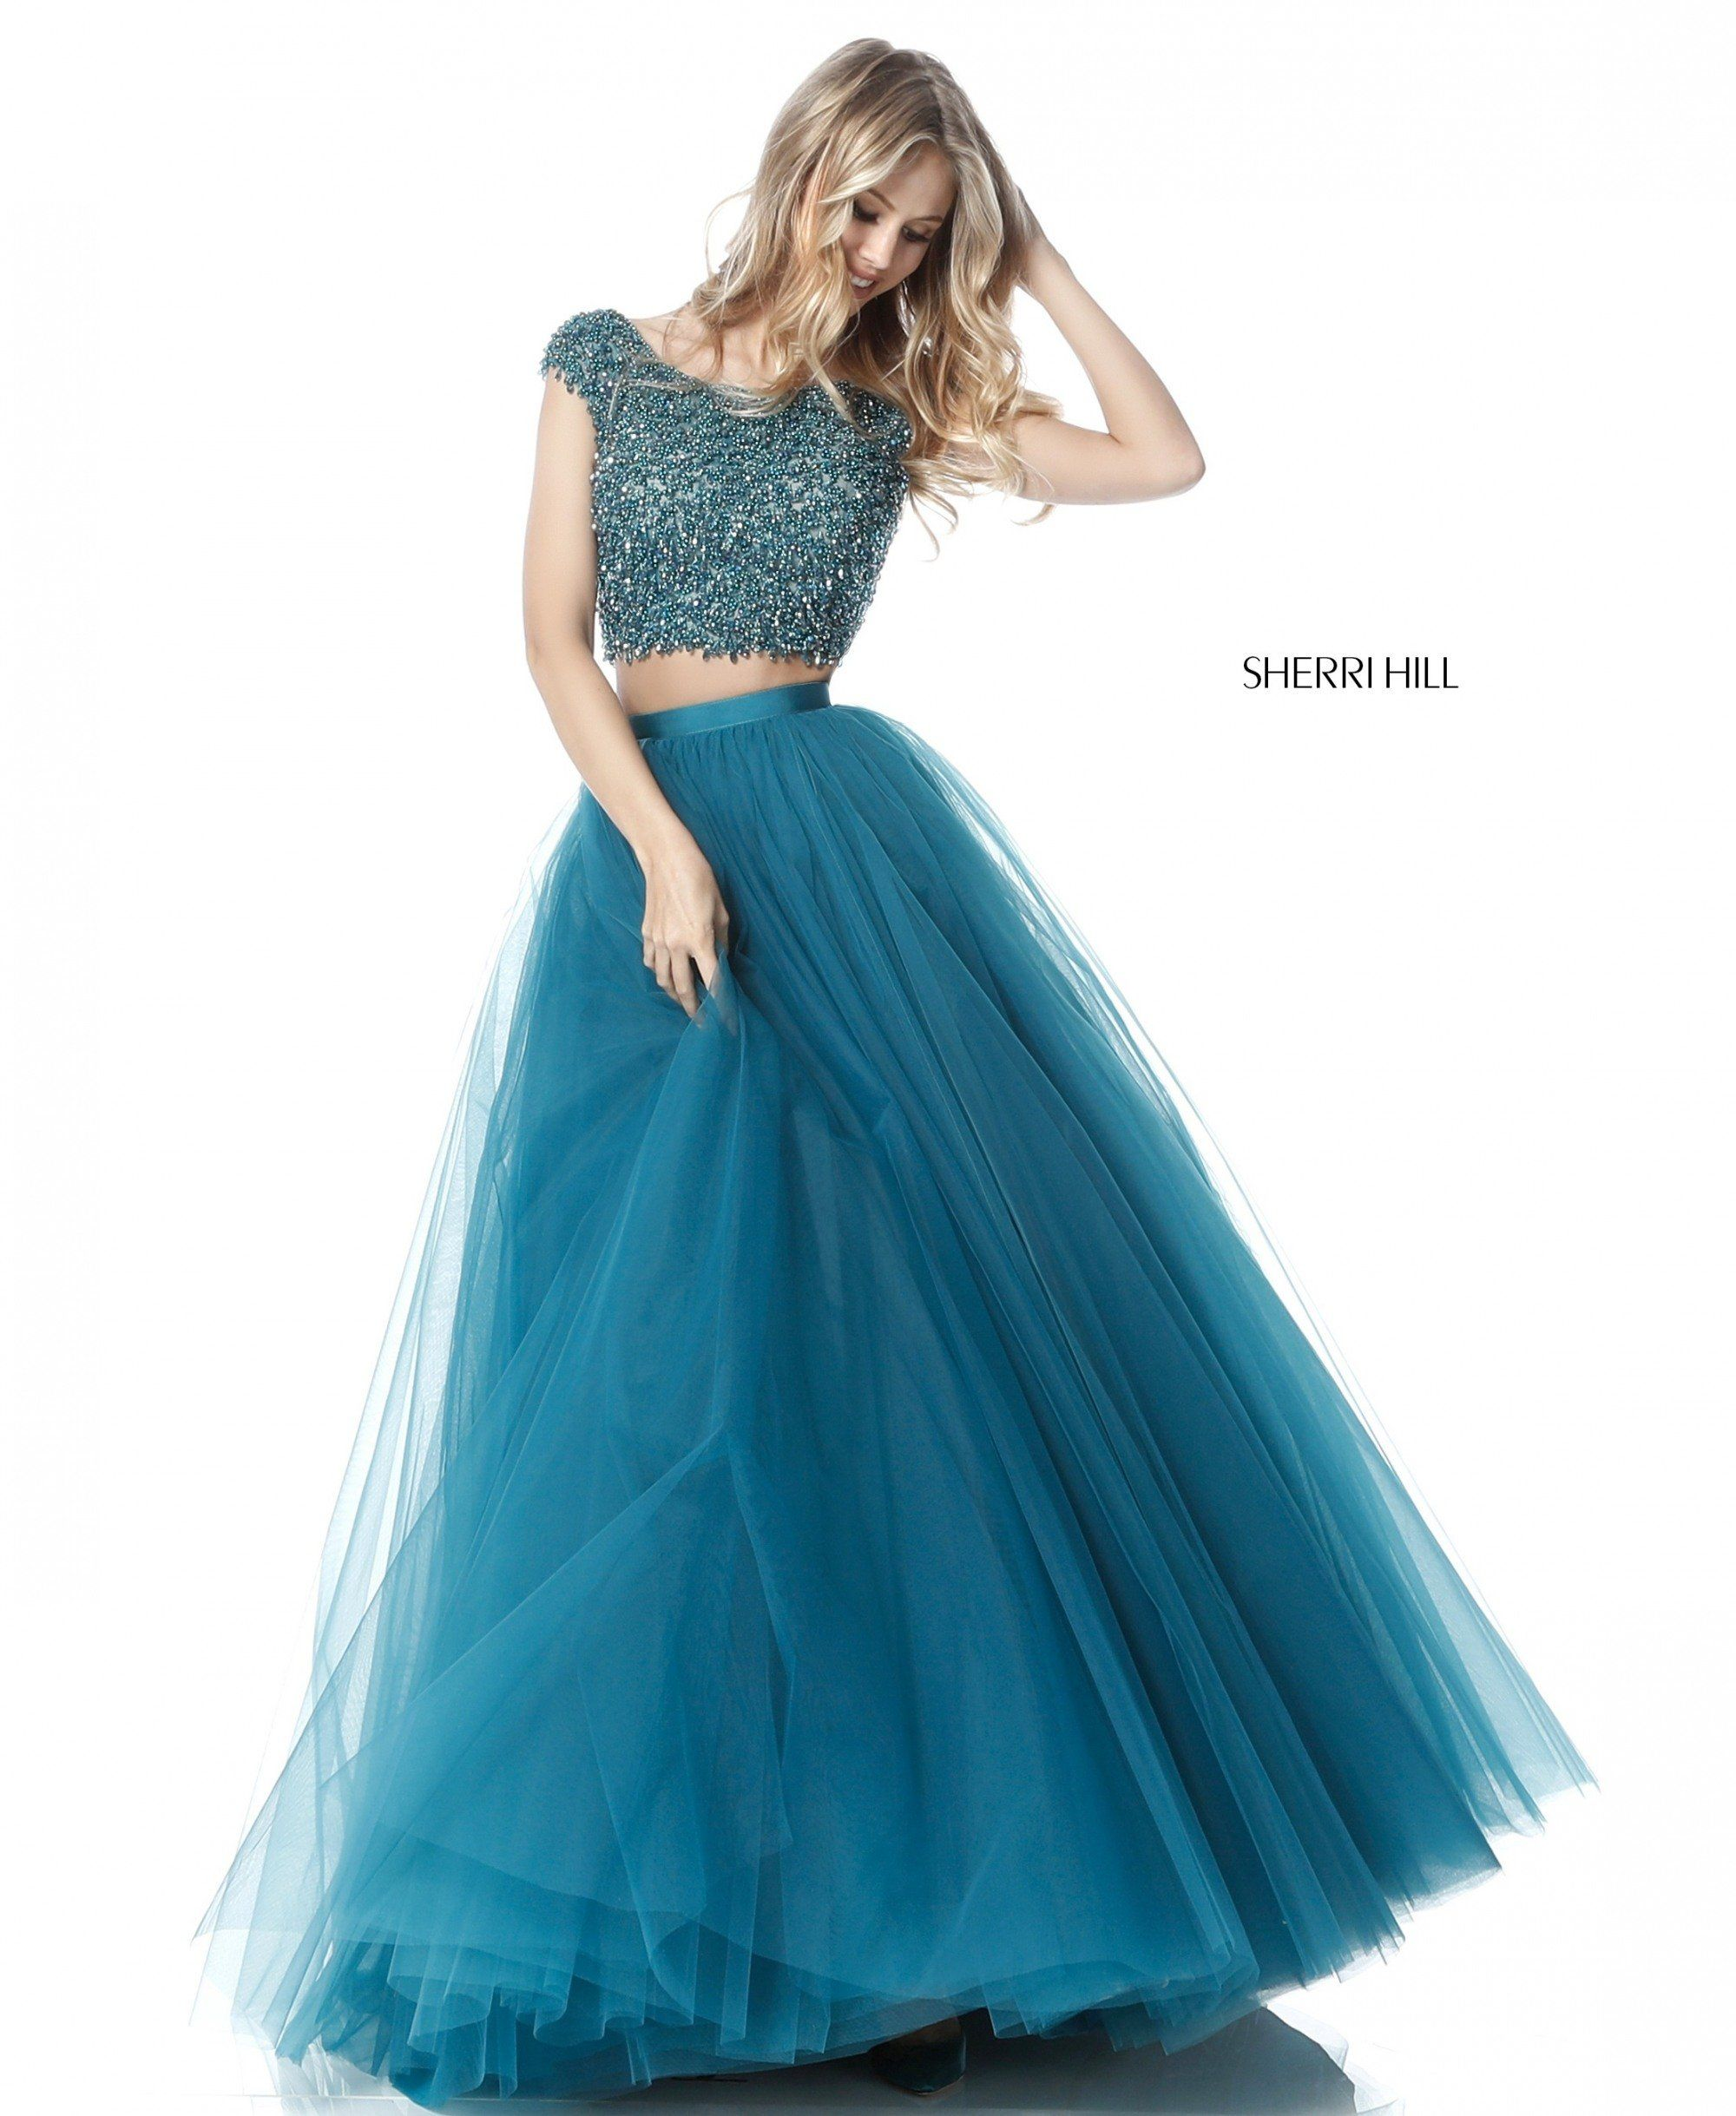 Sherri Hill 51594 | Prom, Pageants and Formal